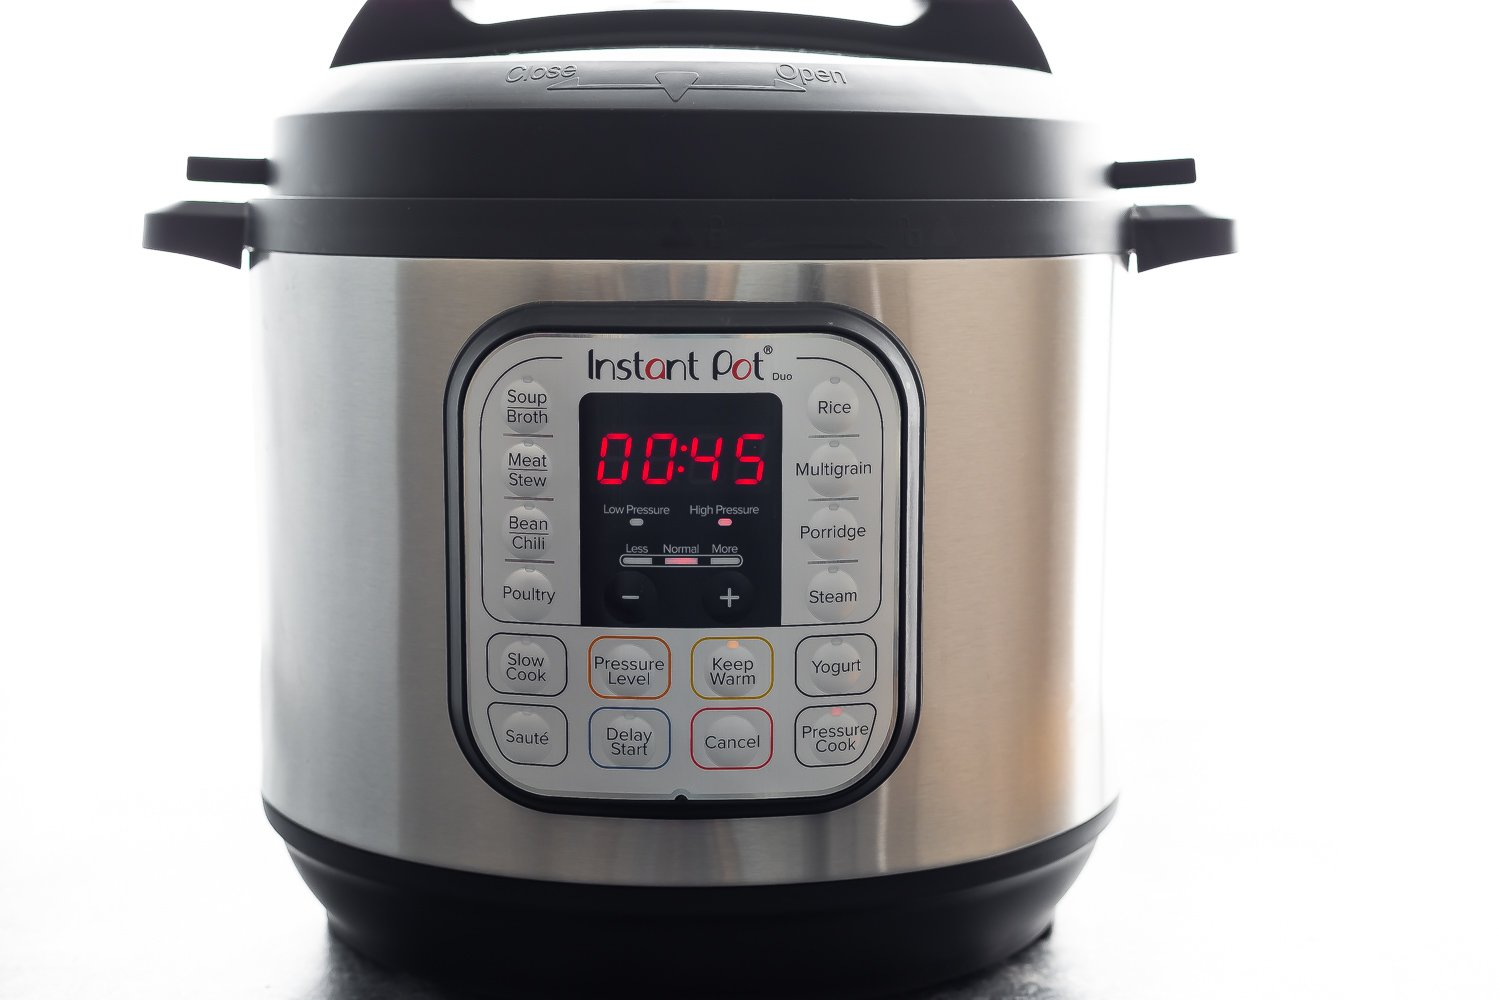 instant pot with 45 minutes on the timer